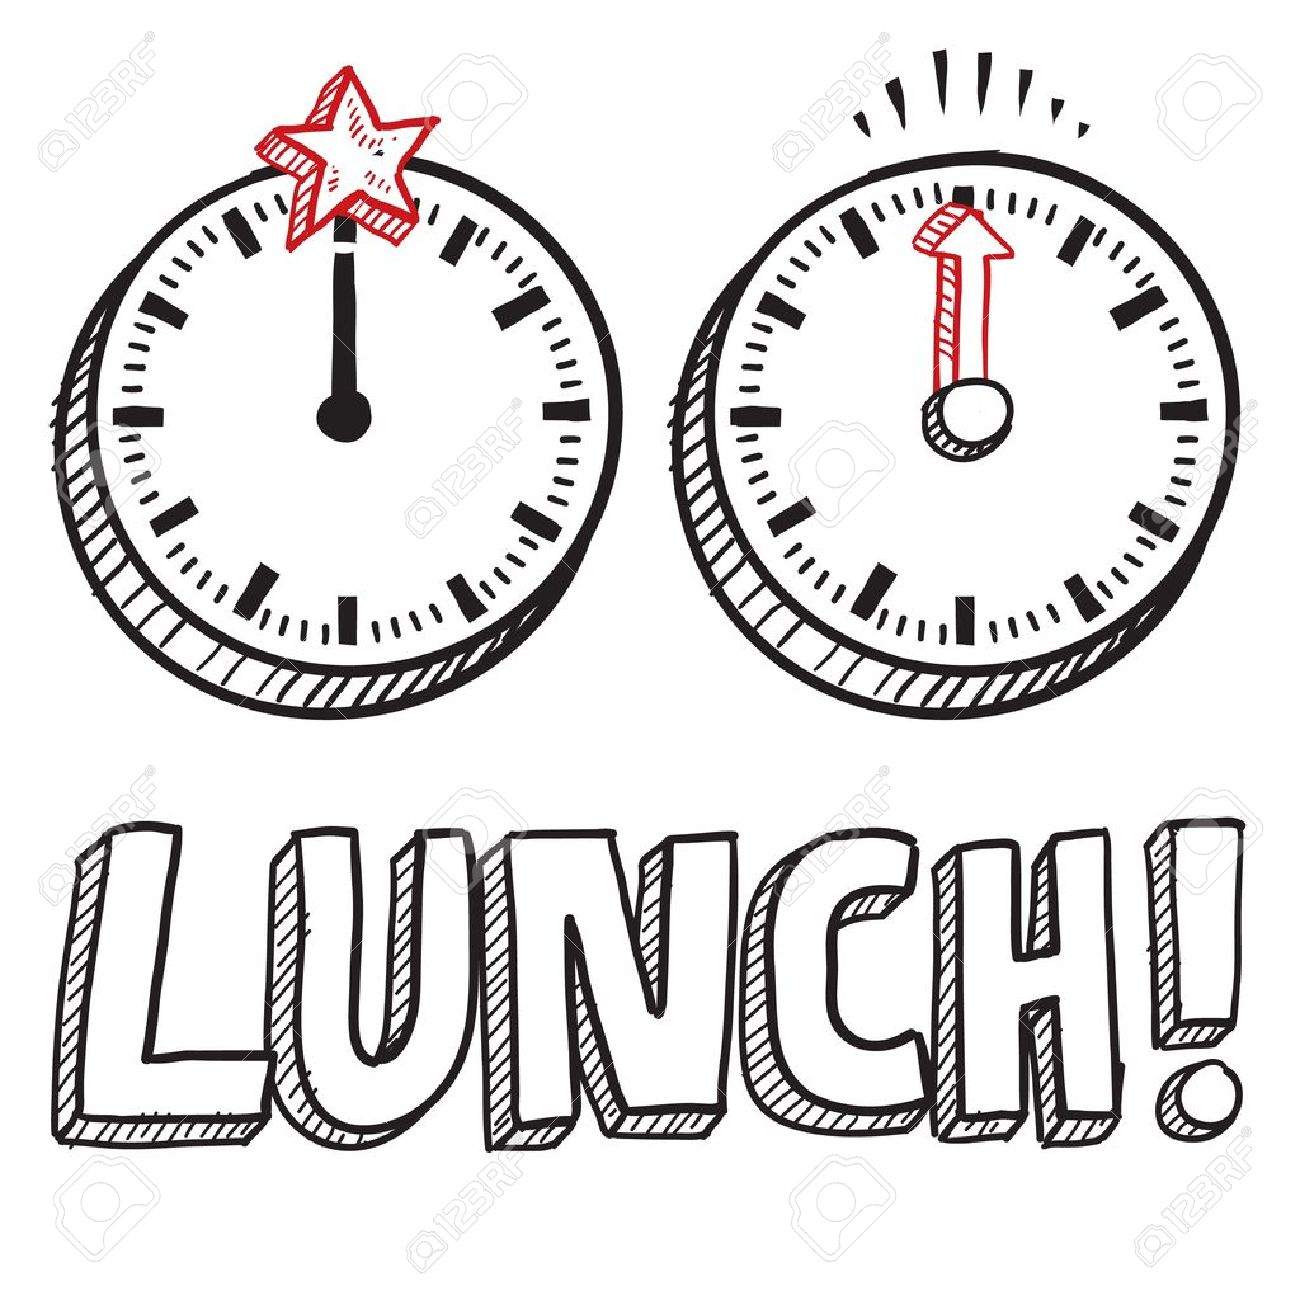 Doodle style lunch break illustration in vector format  Includes text and clocks indicating noon Stock Vector - 18476627